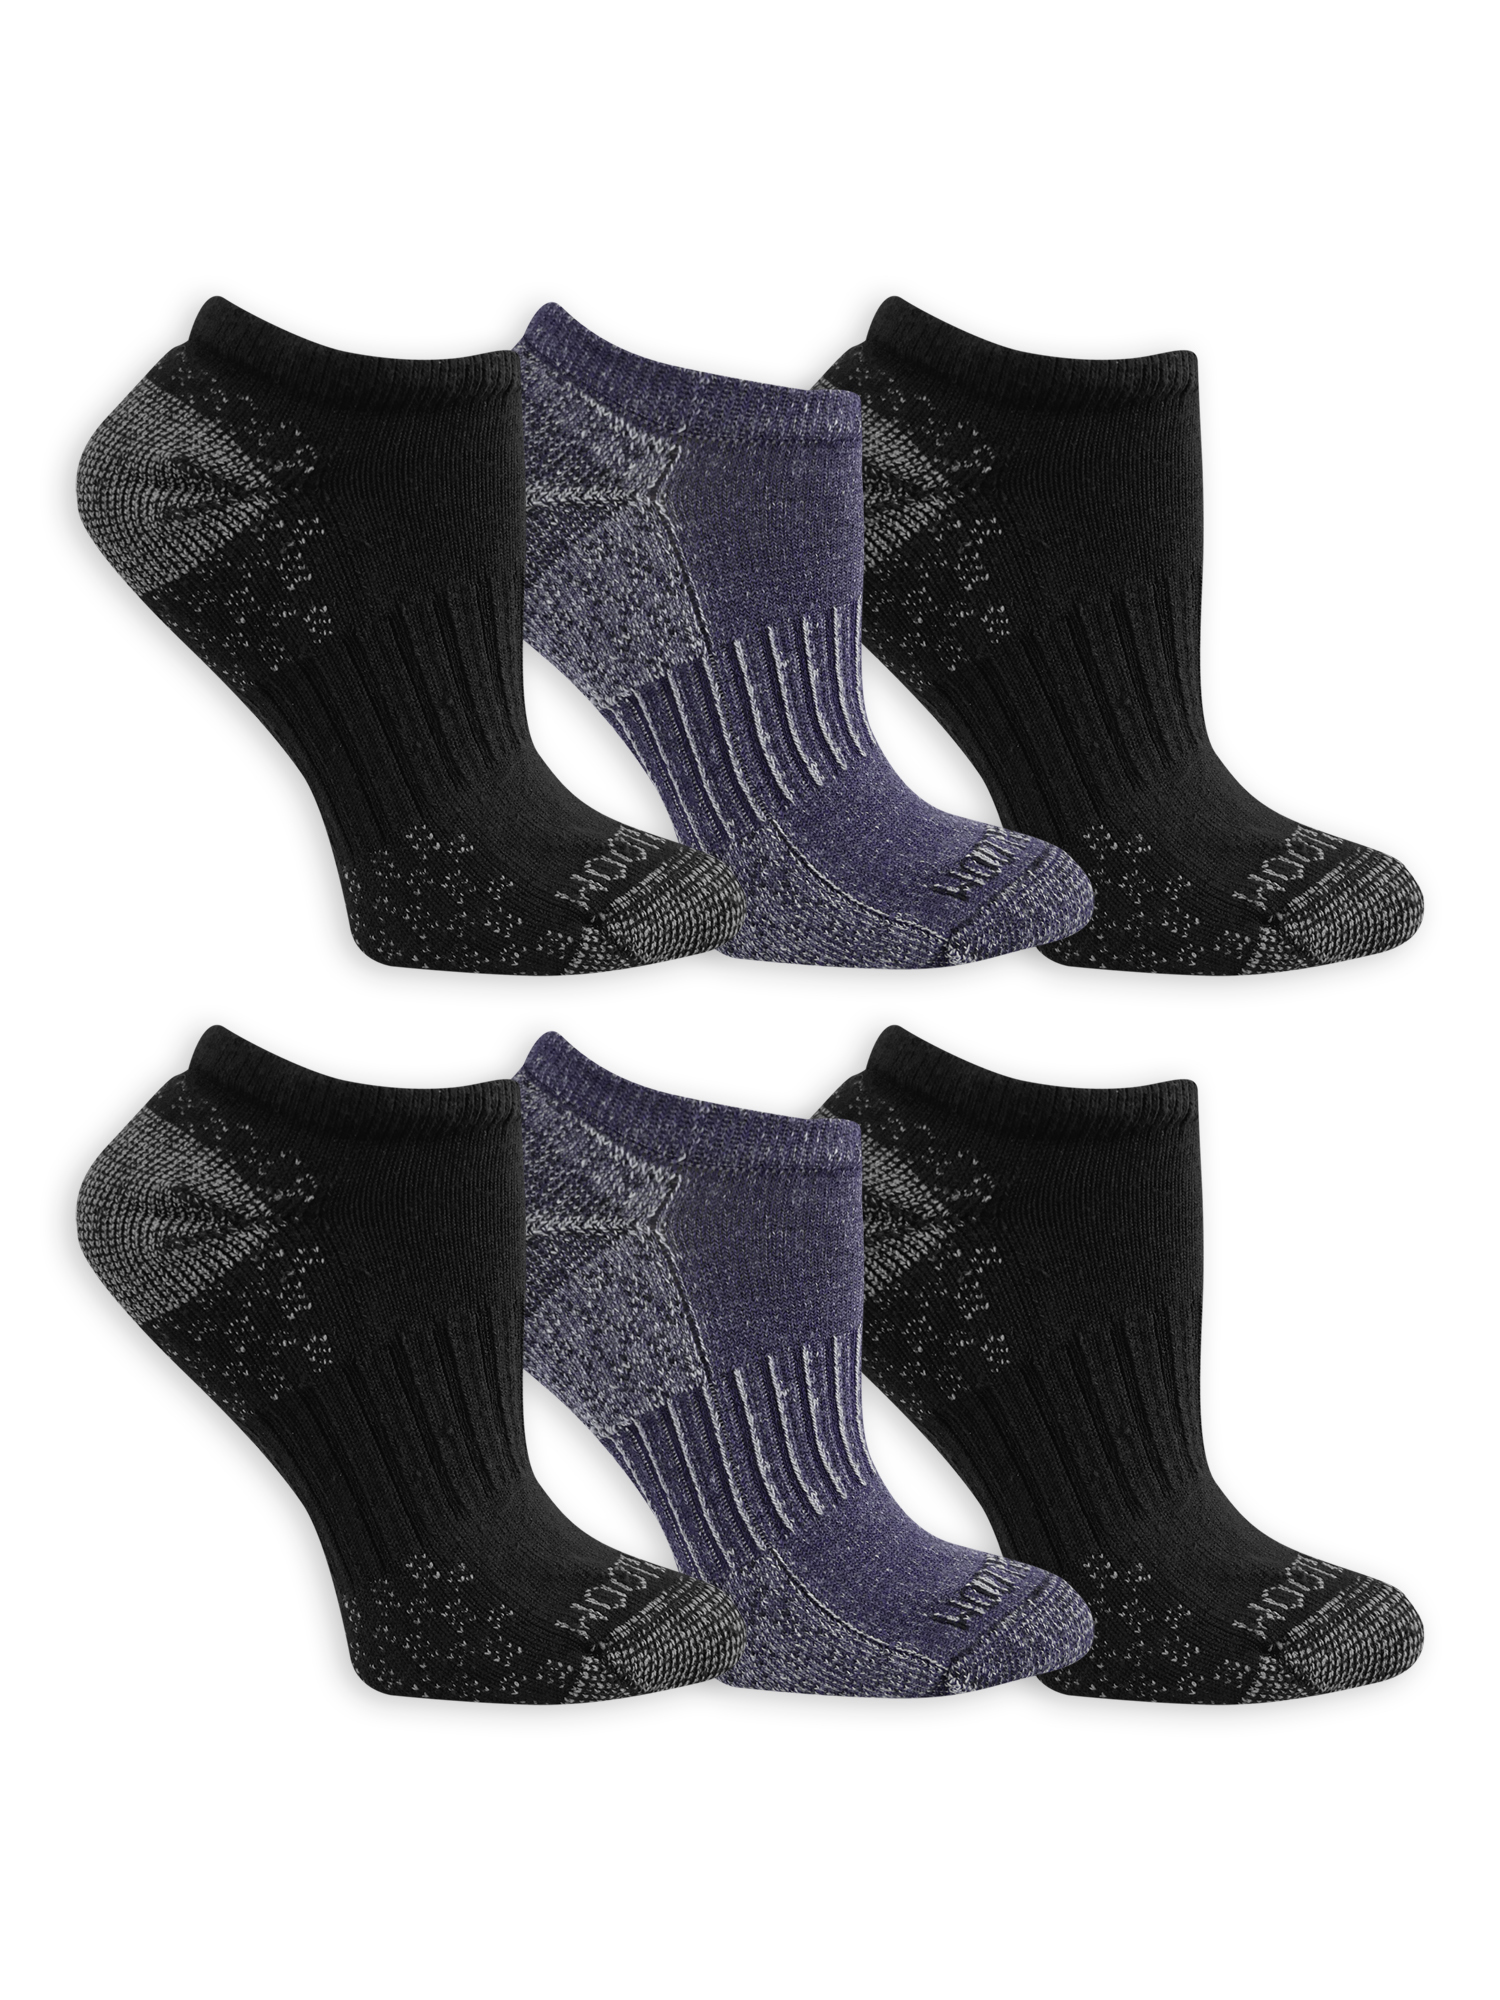 Fruit of the Loom Womens 6 Pack No Show Socks